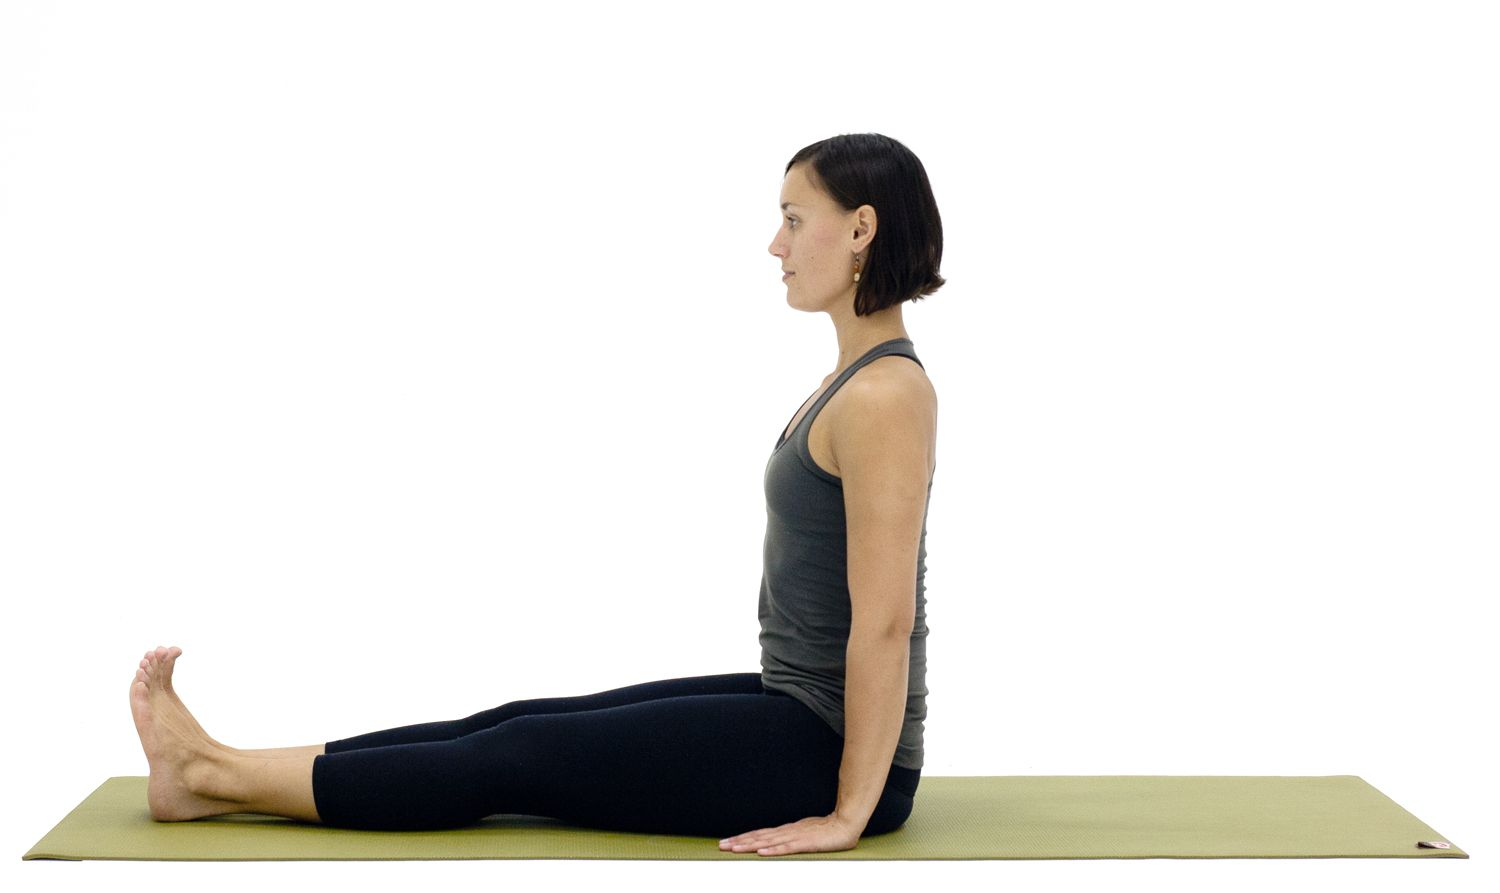 Watch How to Do Seated Forward Bend (Paschimottanasana) in Yoga video